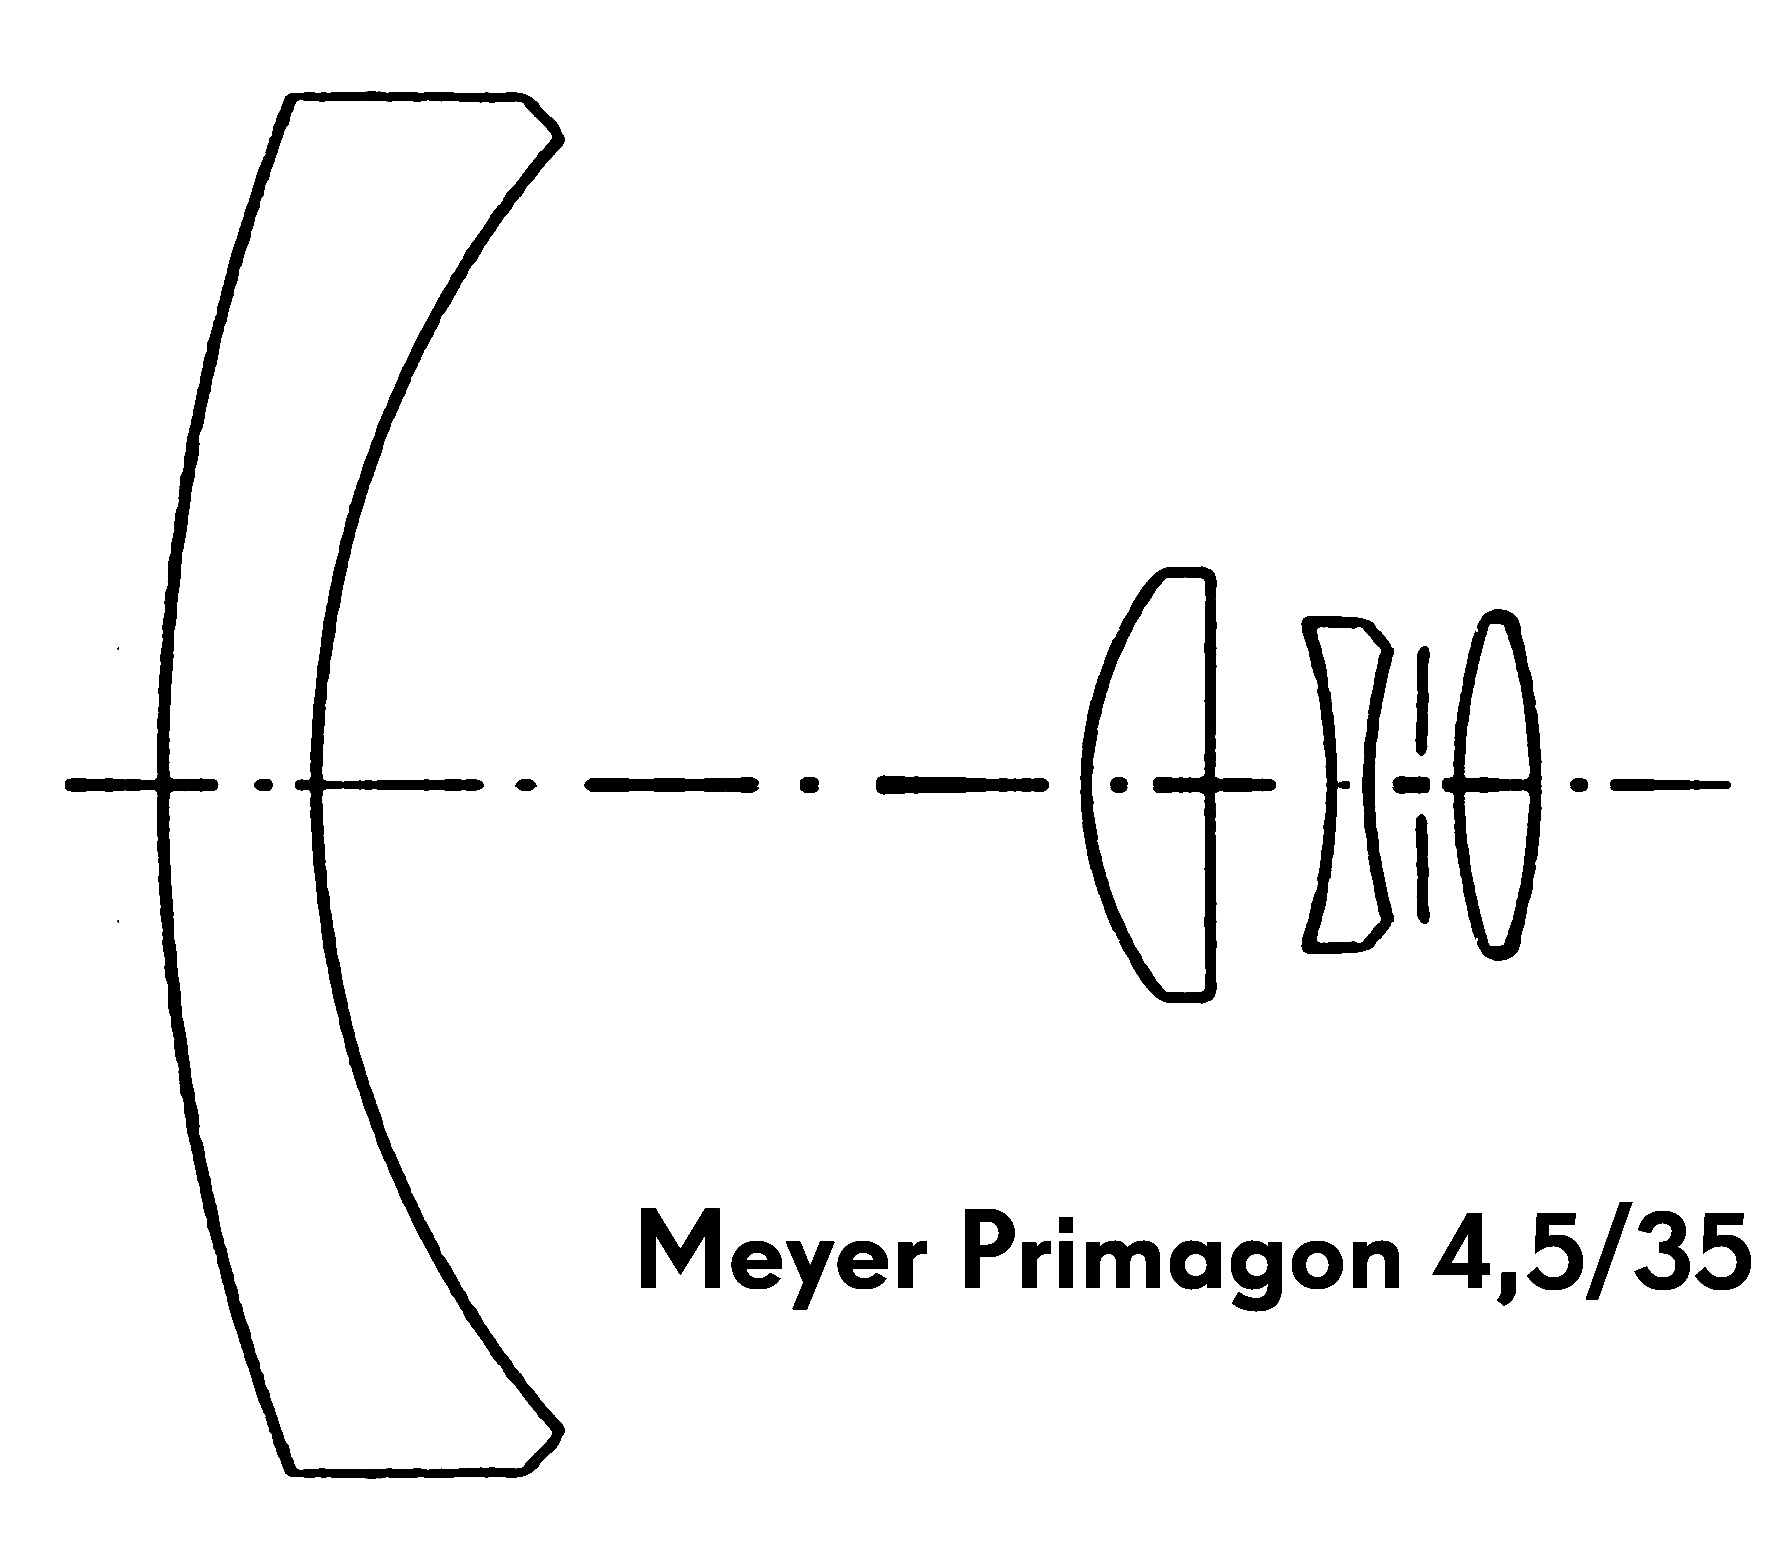 Meyer Primagon 4,5/35mm